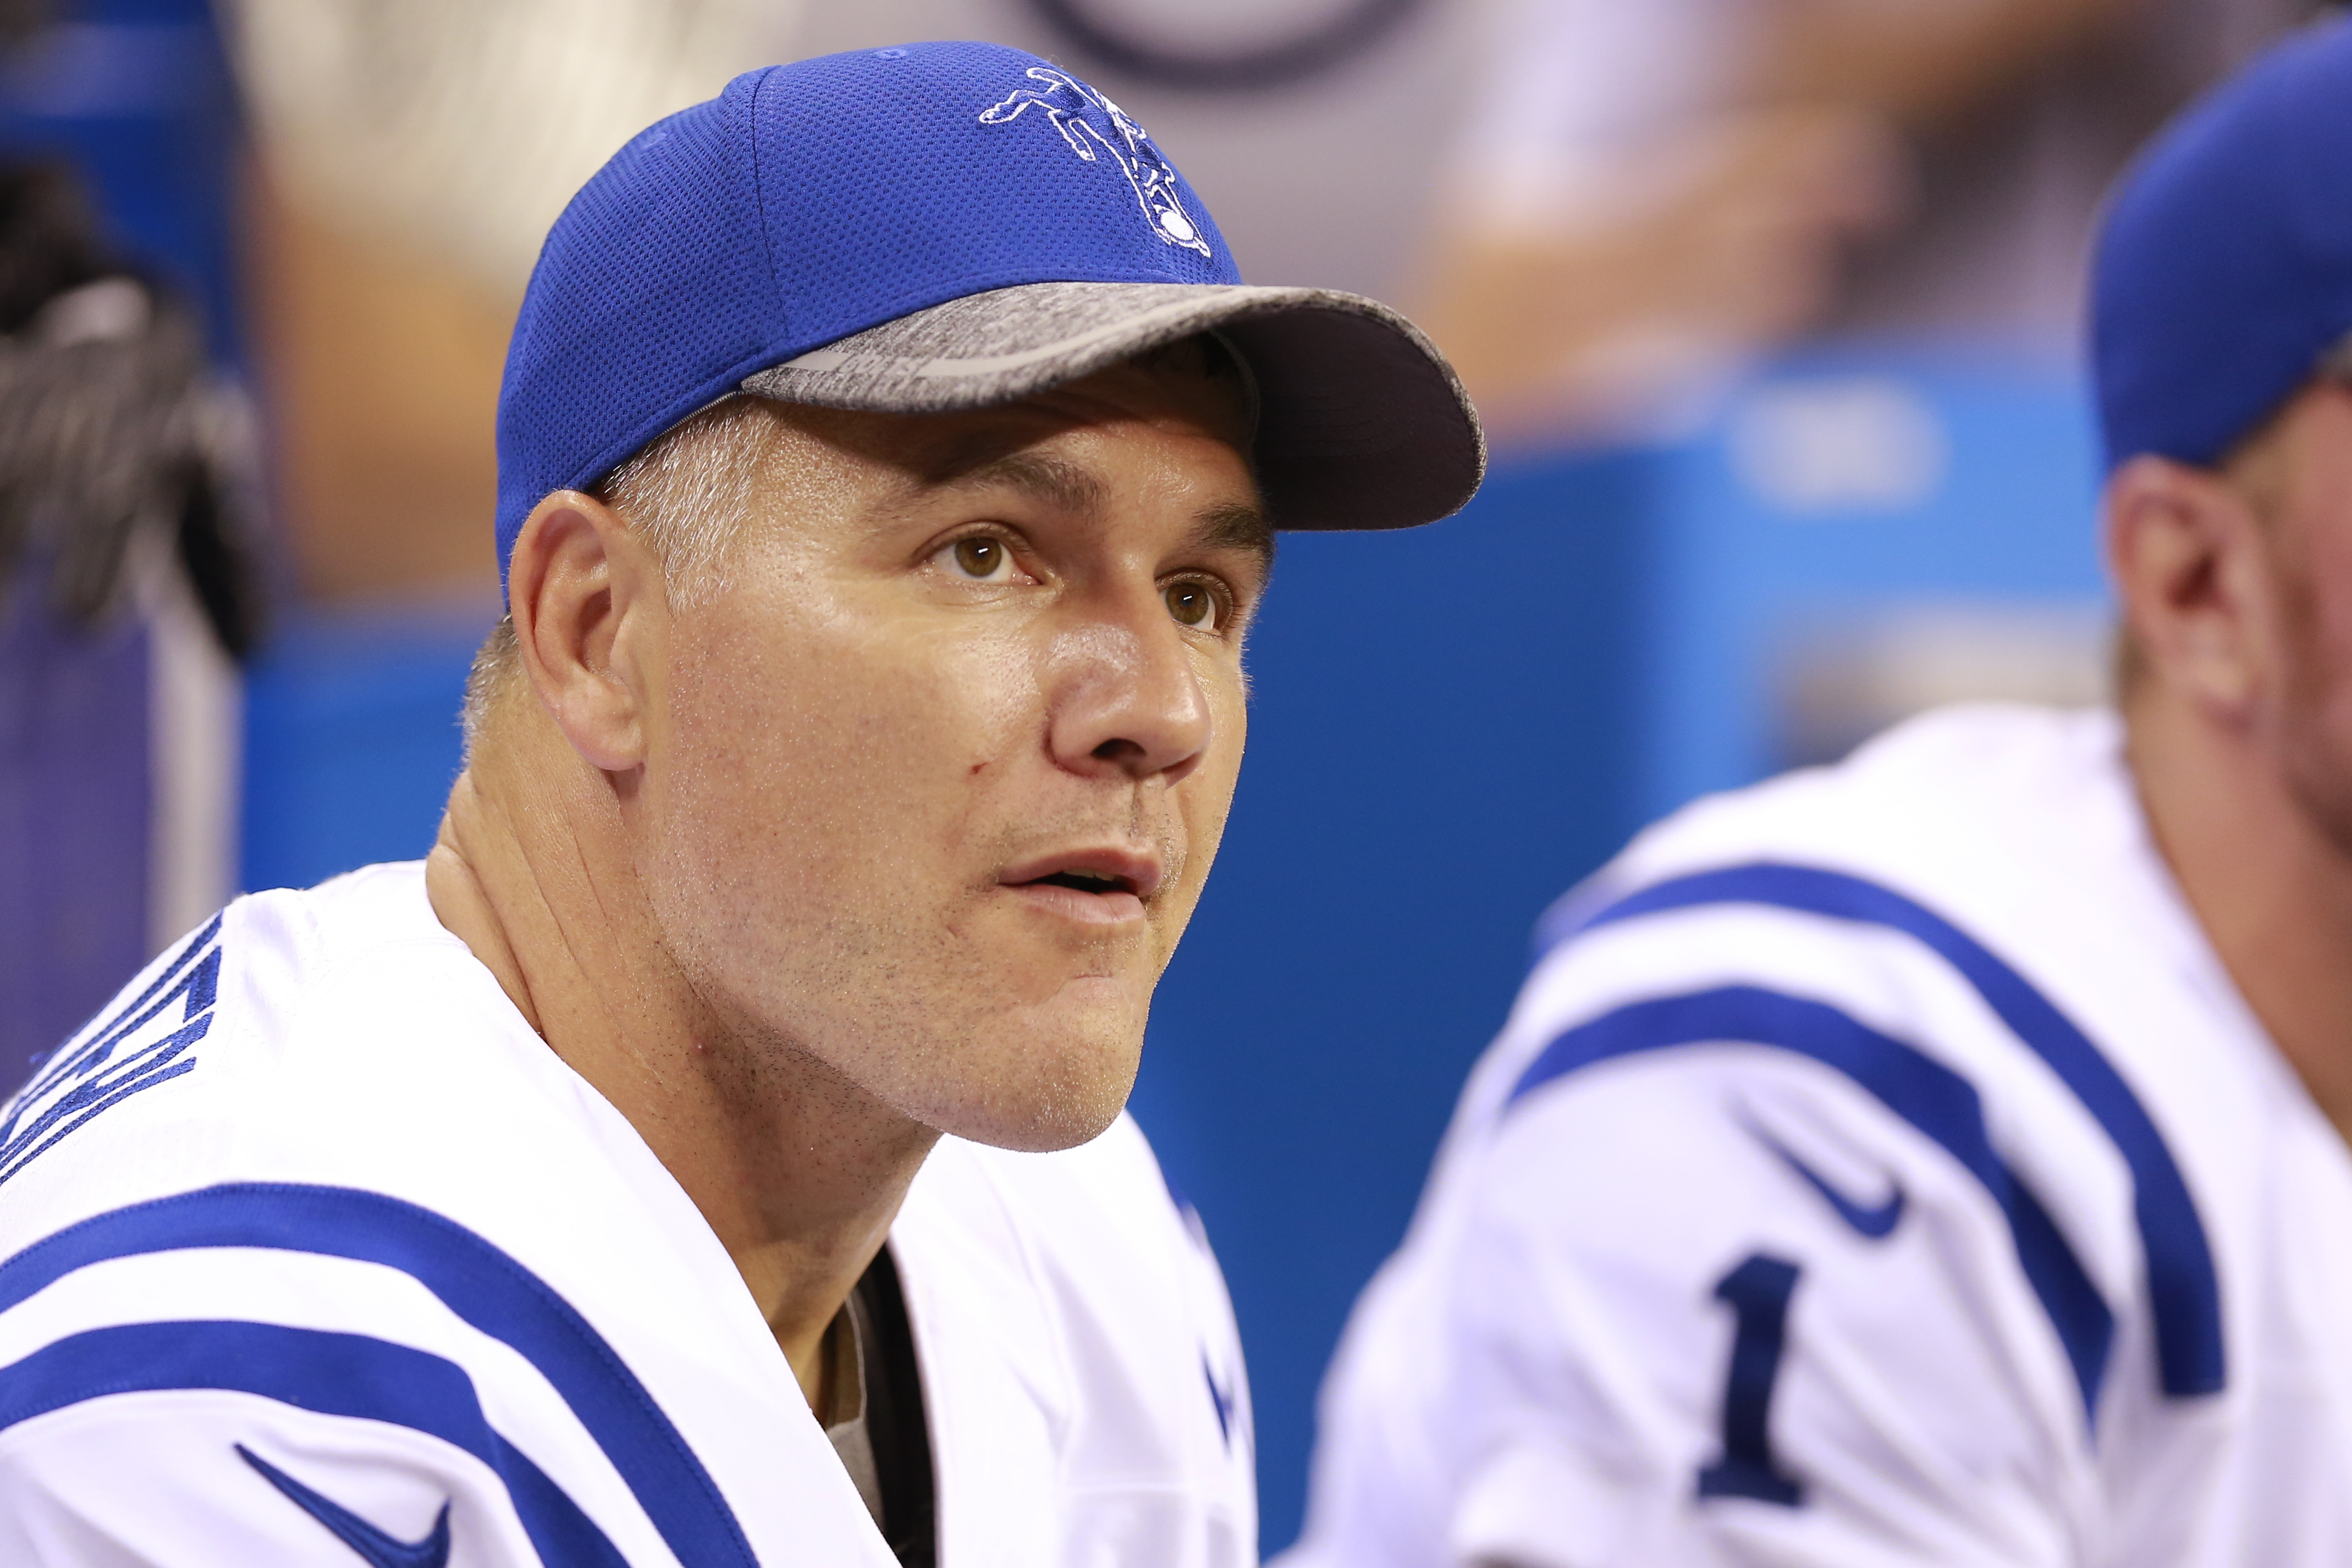 This Aug. 20, 2016 photo shows Indianapolis Colts kicker Adam Vinatieri (4) on the sideline during the second half of an NFL preseason football game in Indianapolis. Vinatieris reunions usually consist of a personal trip down memory lane. Forty players, n